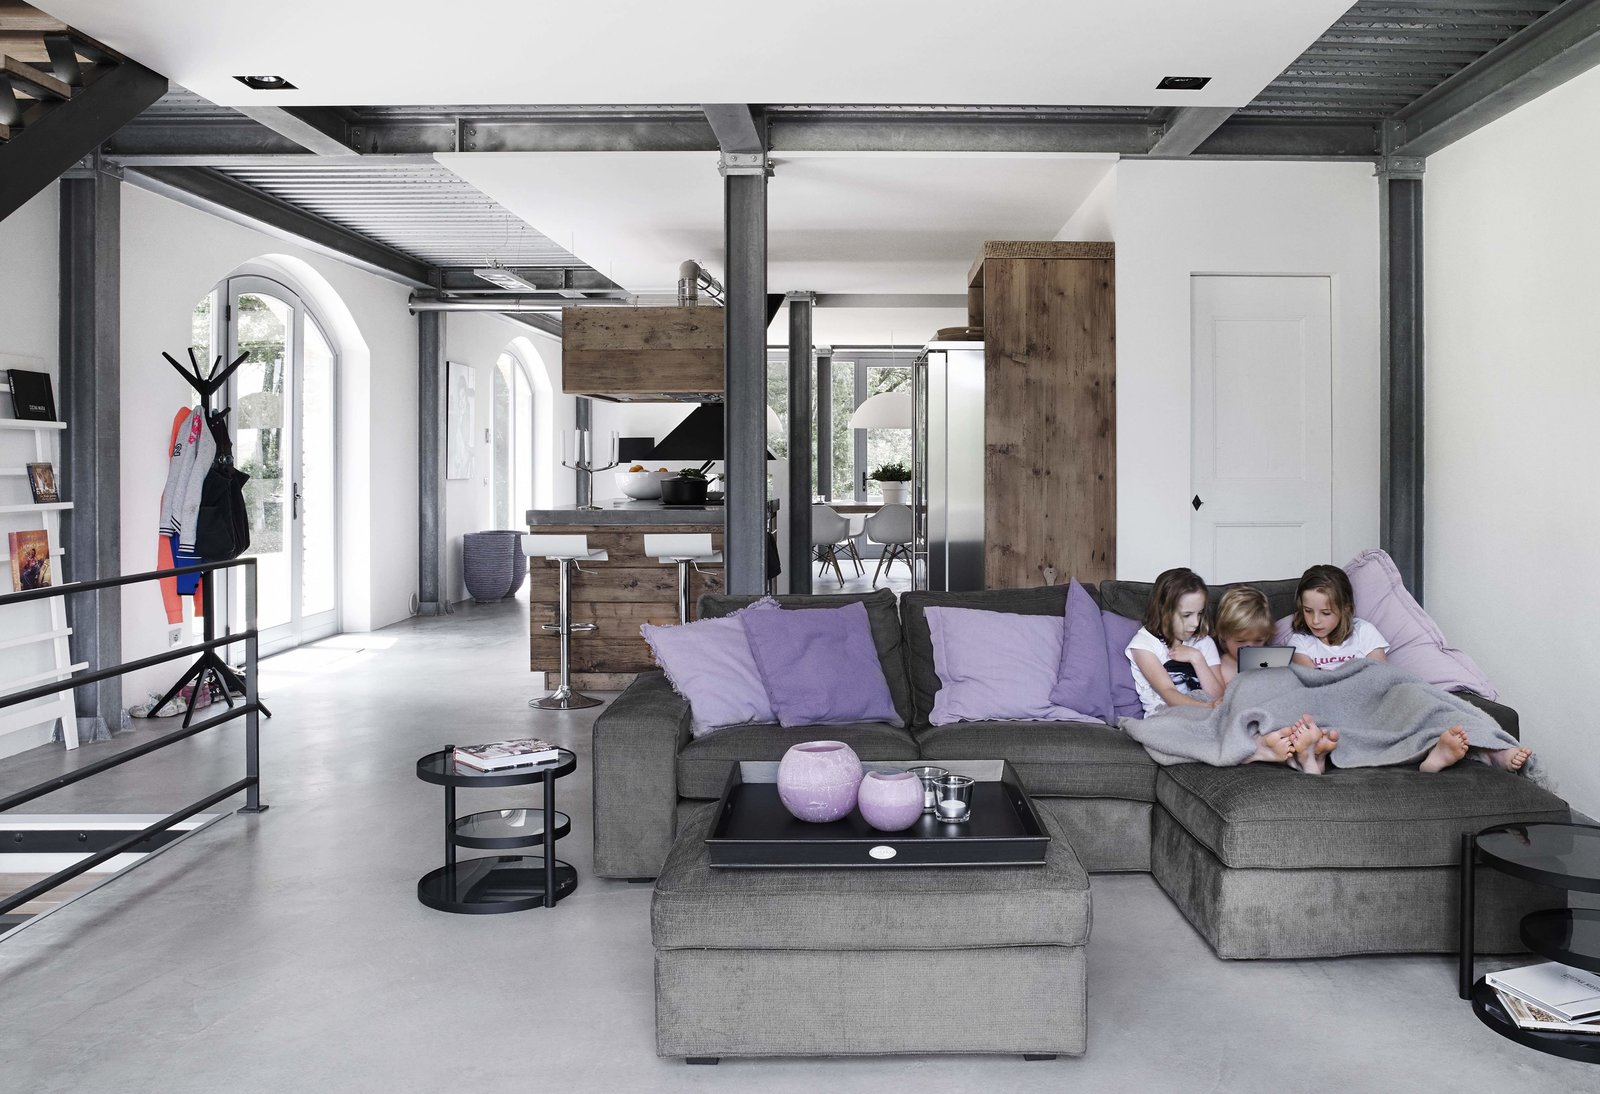 Living Room, Stools, Recessed Lighting, Sectional, Bar, Concrete Floor, Ottomans, and End Tables  Photo 1 of 11 in Stay in a Modern, Industrial Home That's Hidden Inside a Traditional Tuscan Villa